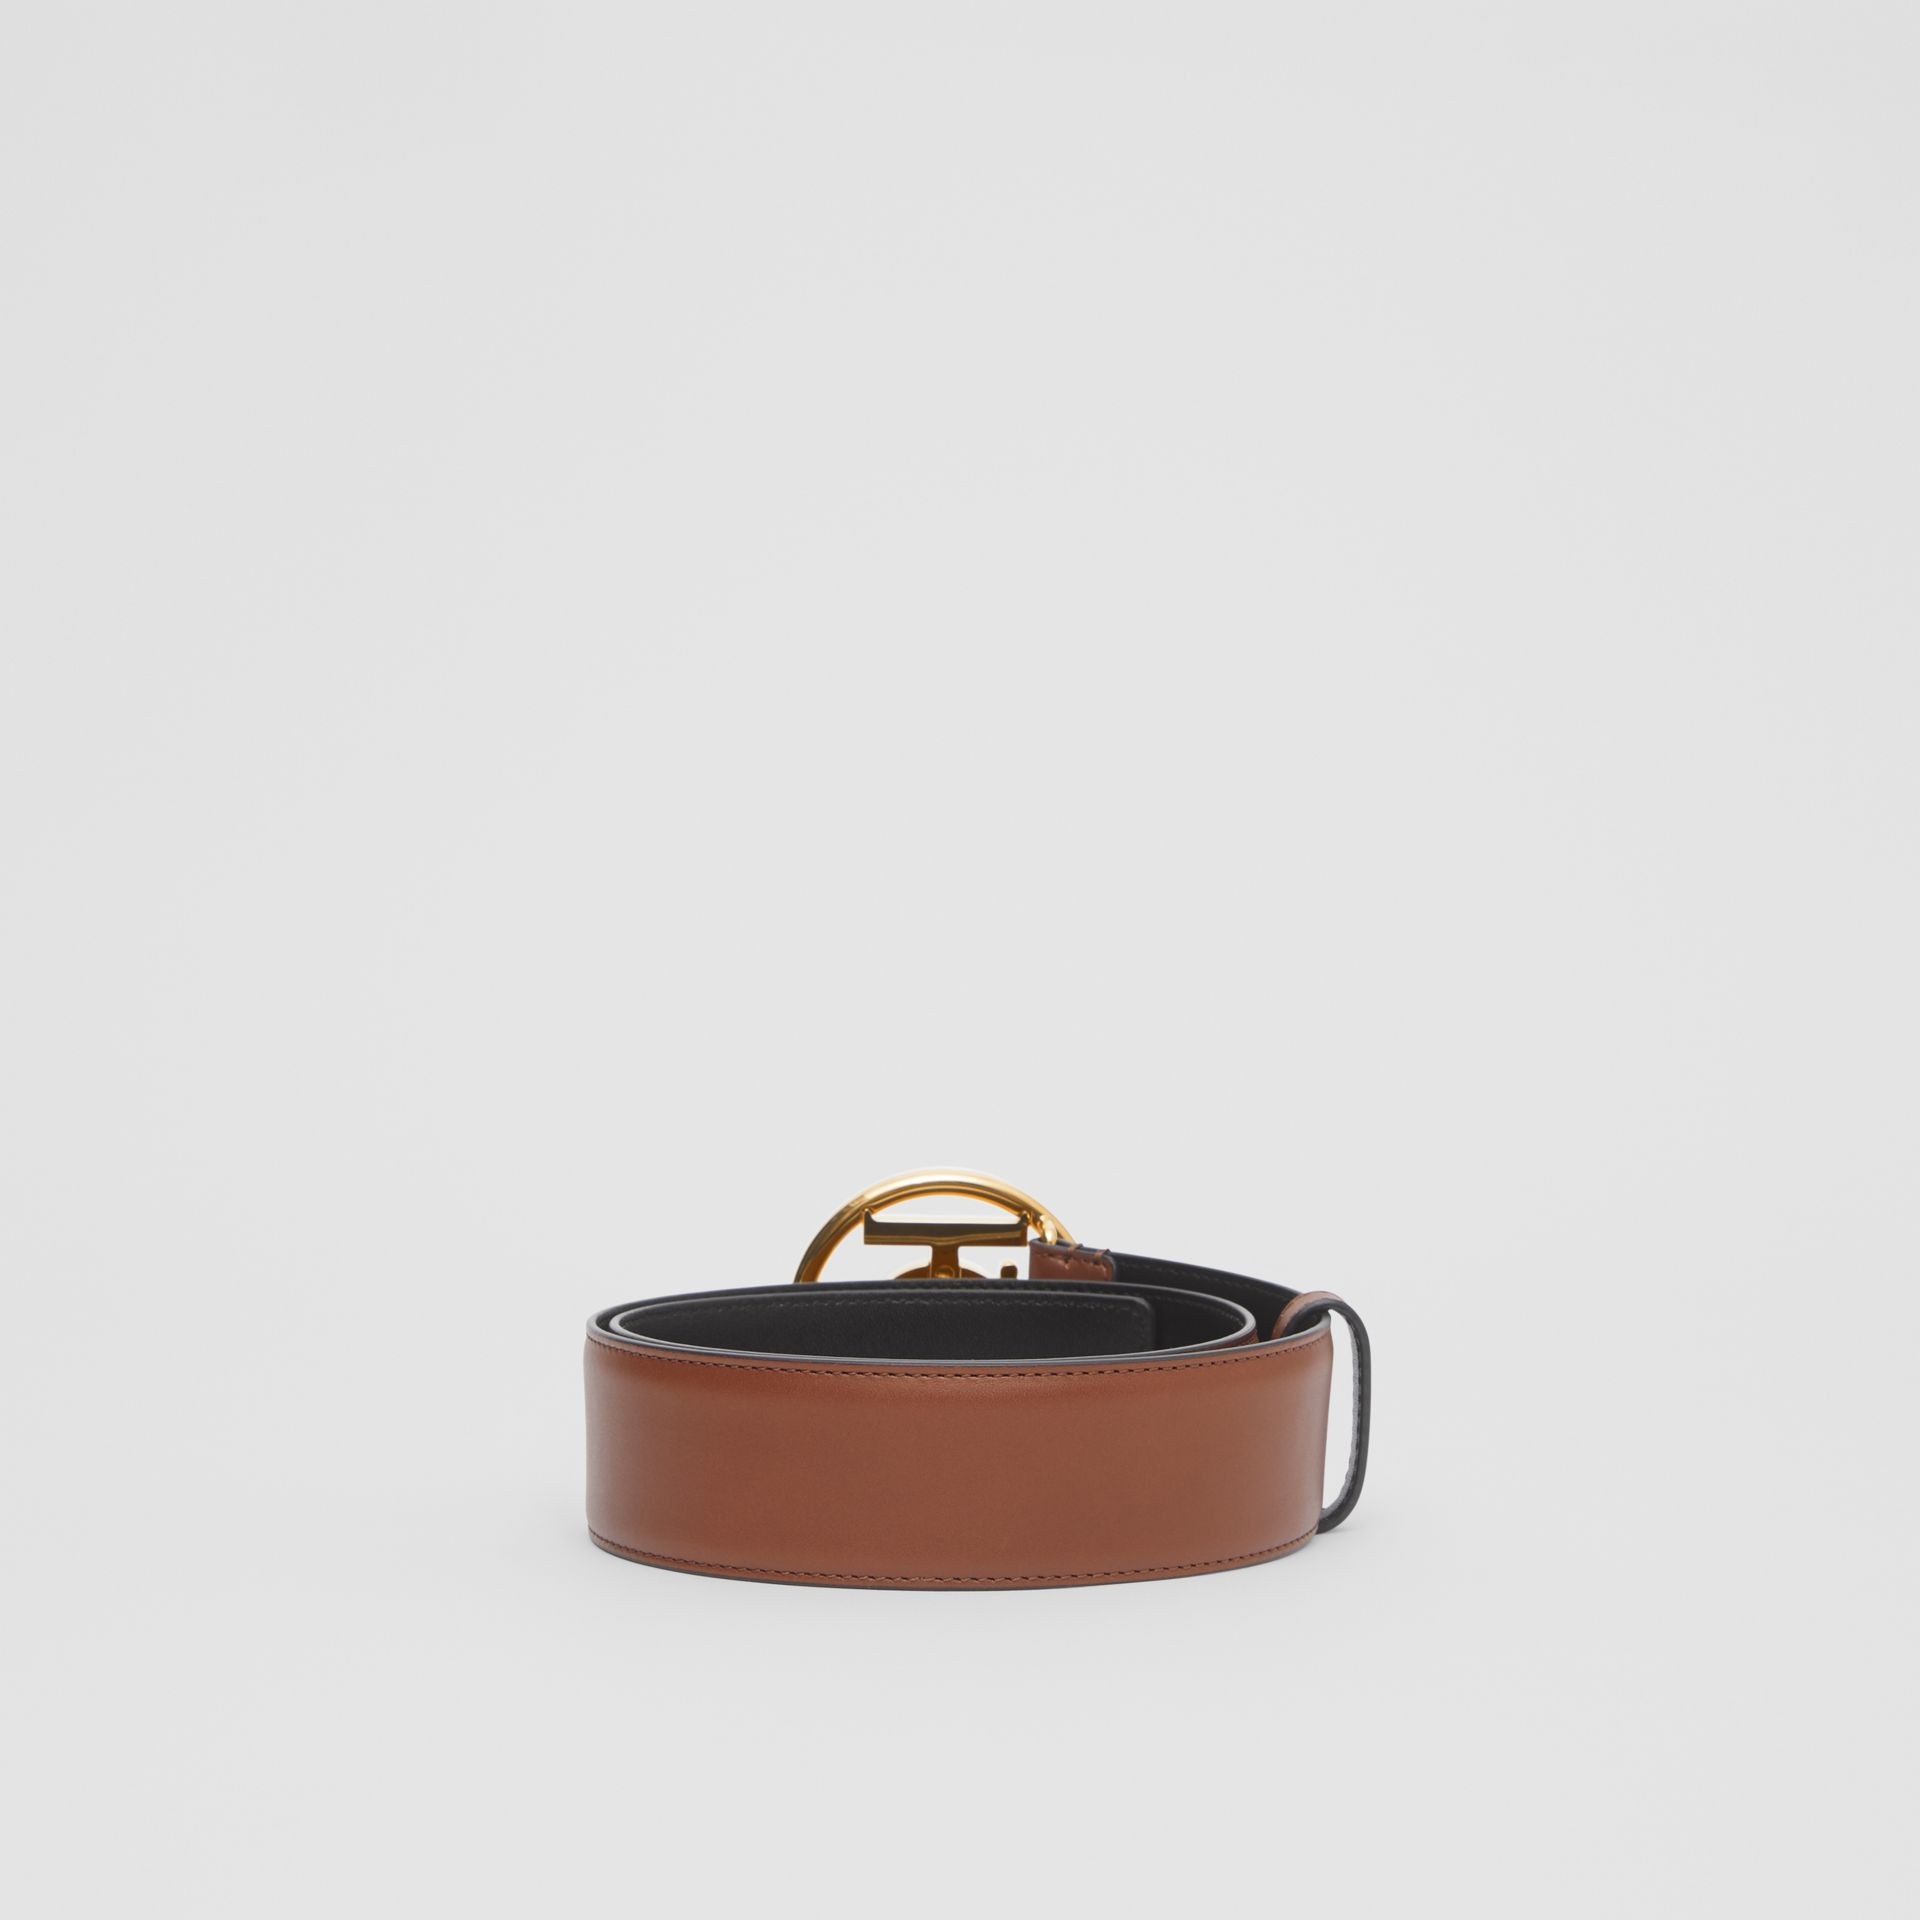 Monogram Motif Leather Belt in Tan/antique Dark Brass - Women | Burberry United Kingdom - gallery image 3